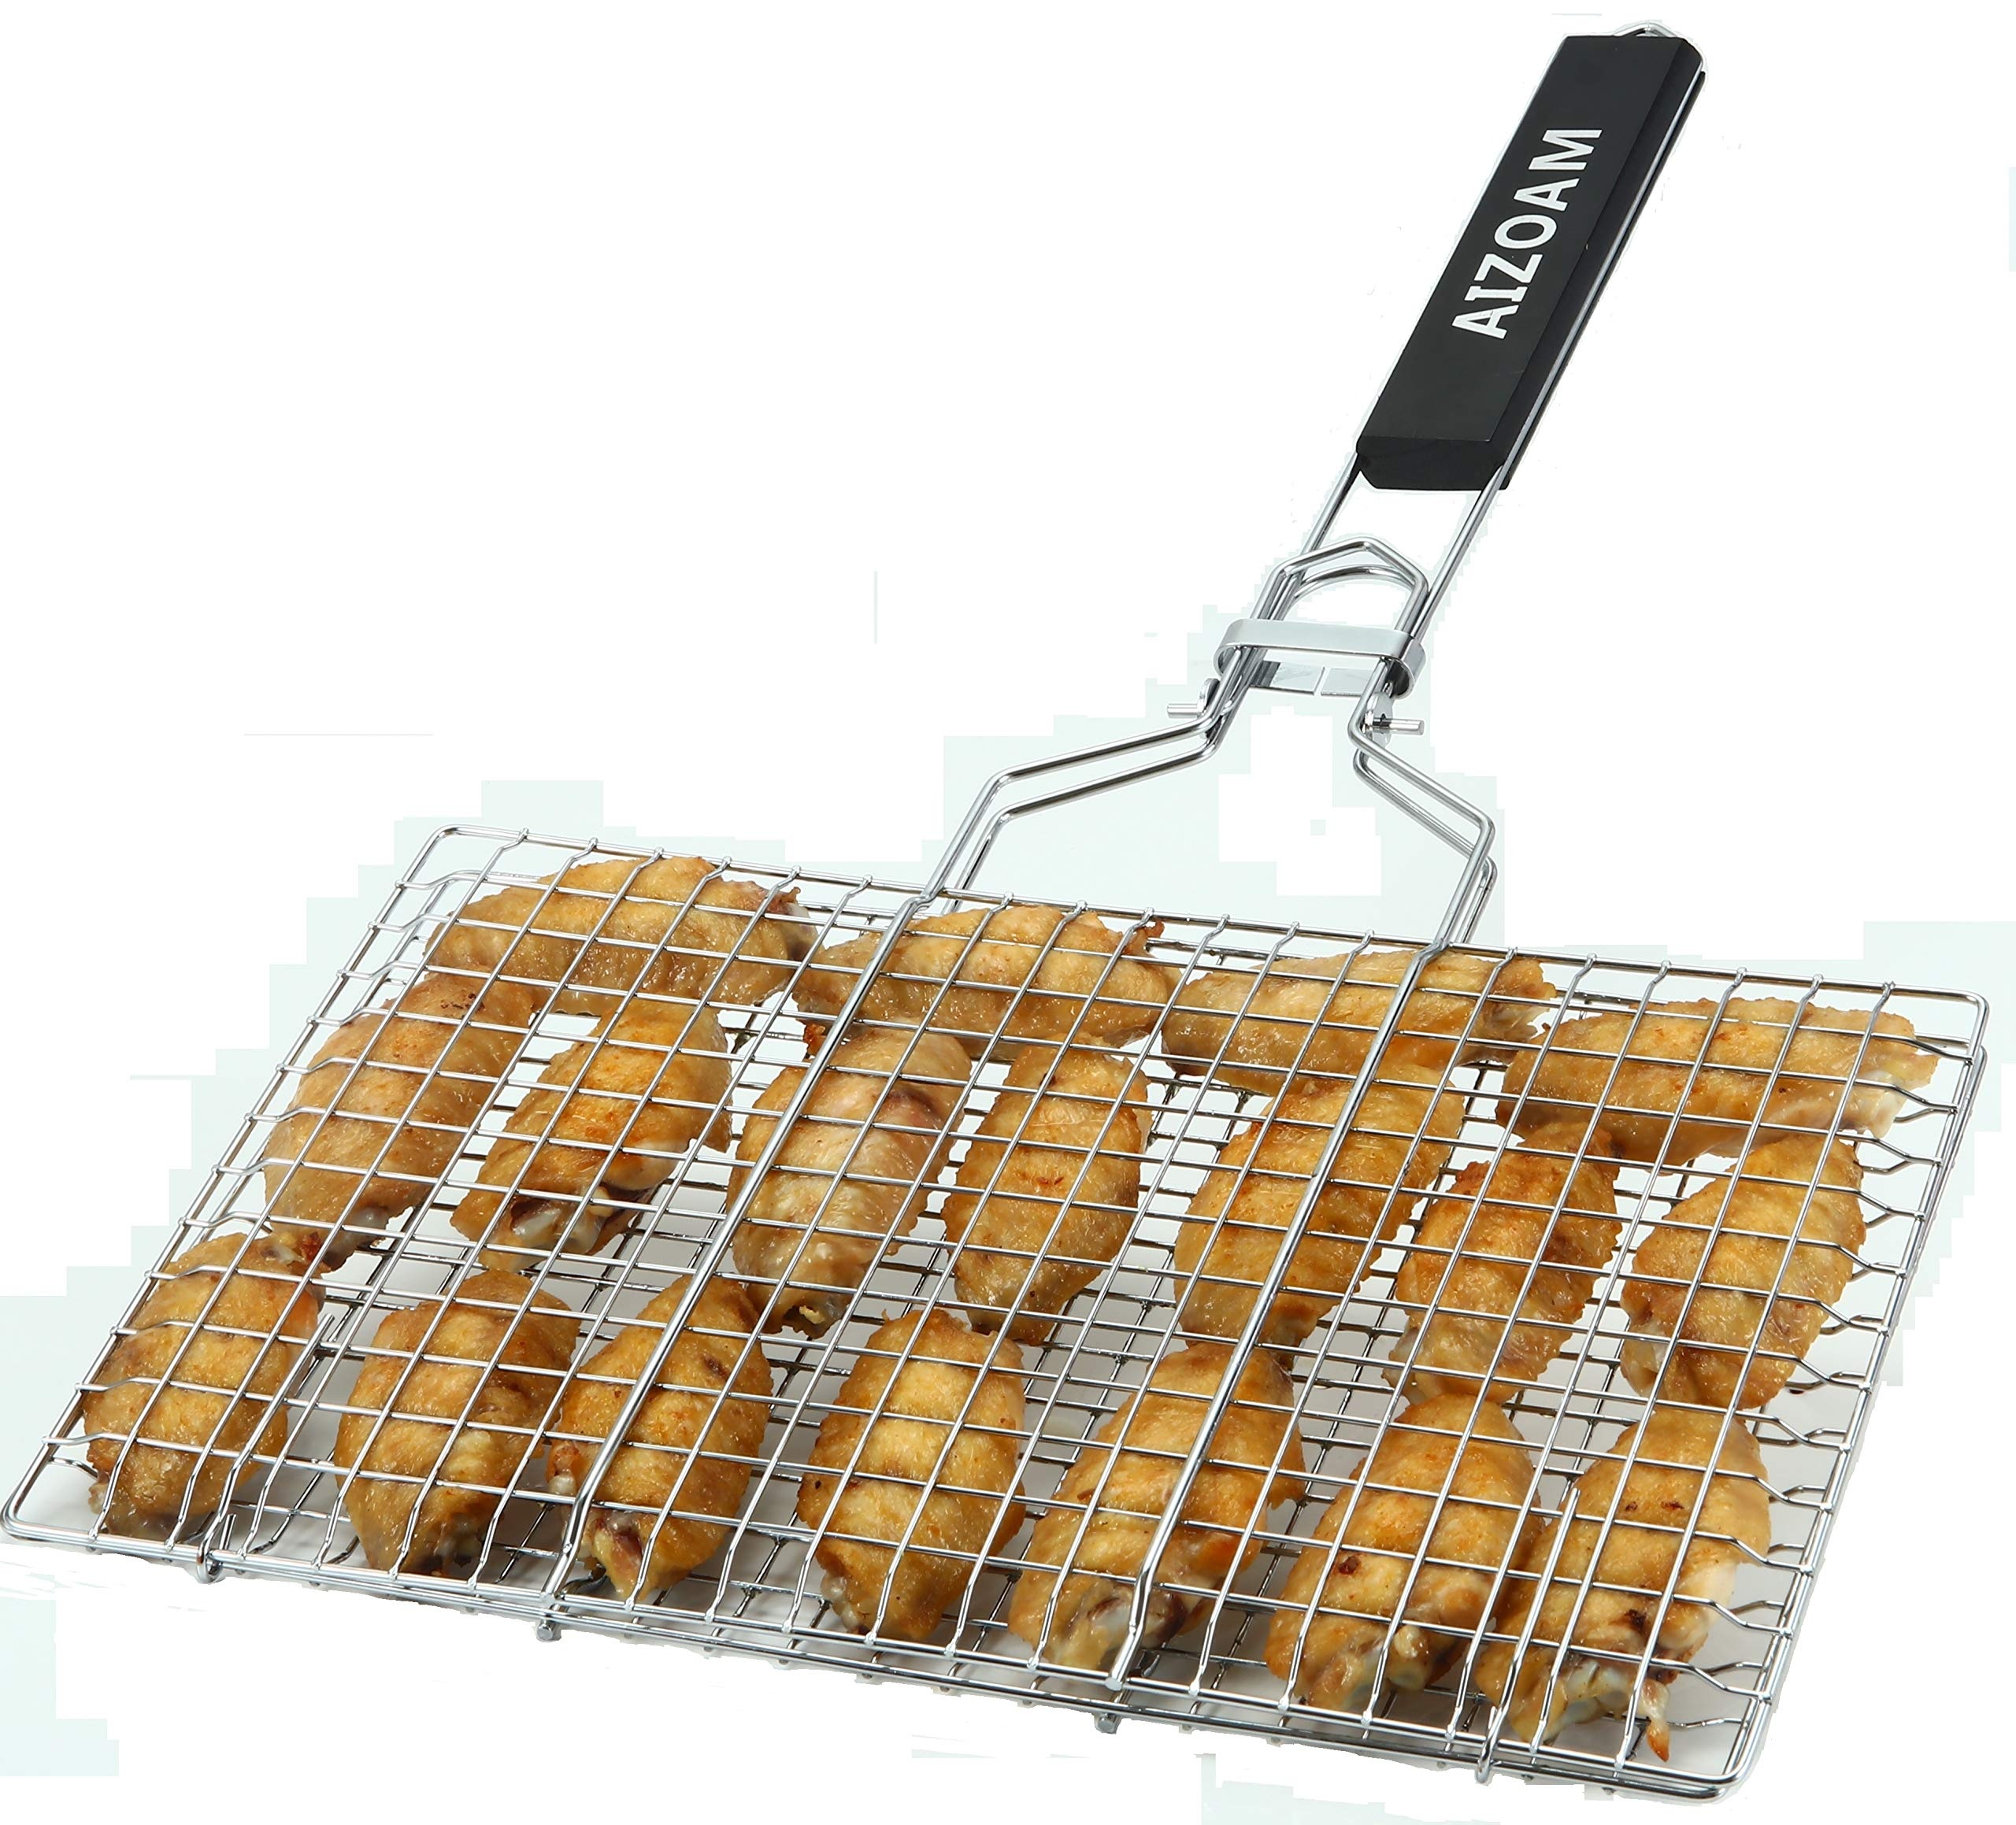 AIZOAM Portable Stainless Steel BBQ Barbecue Grilling Basket for Fish,Vegetables, Steak,Shrimp, Chops and Many Other Food .Great and Useful BBQ Tool.-【Bonus an Additional Sauce Brush】. by AIZOAM